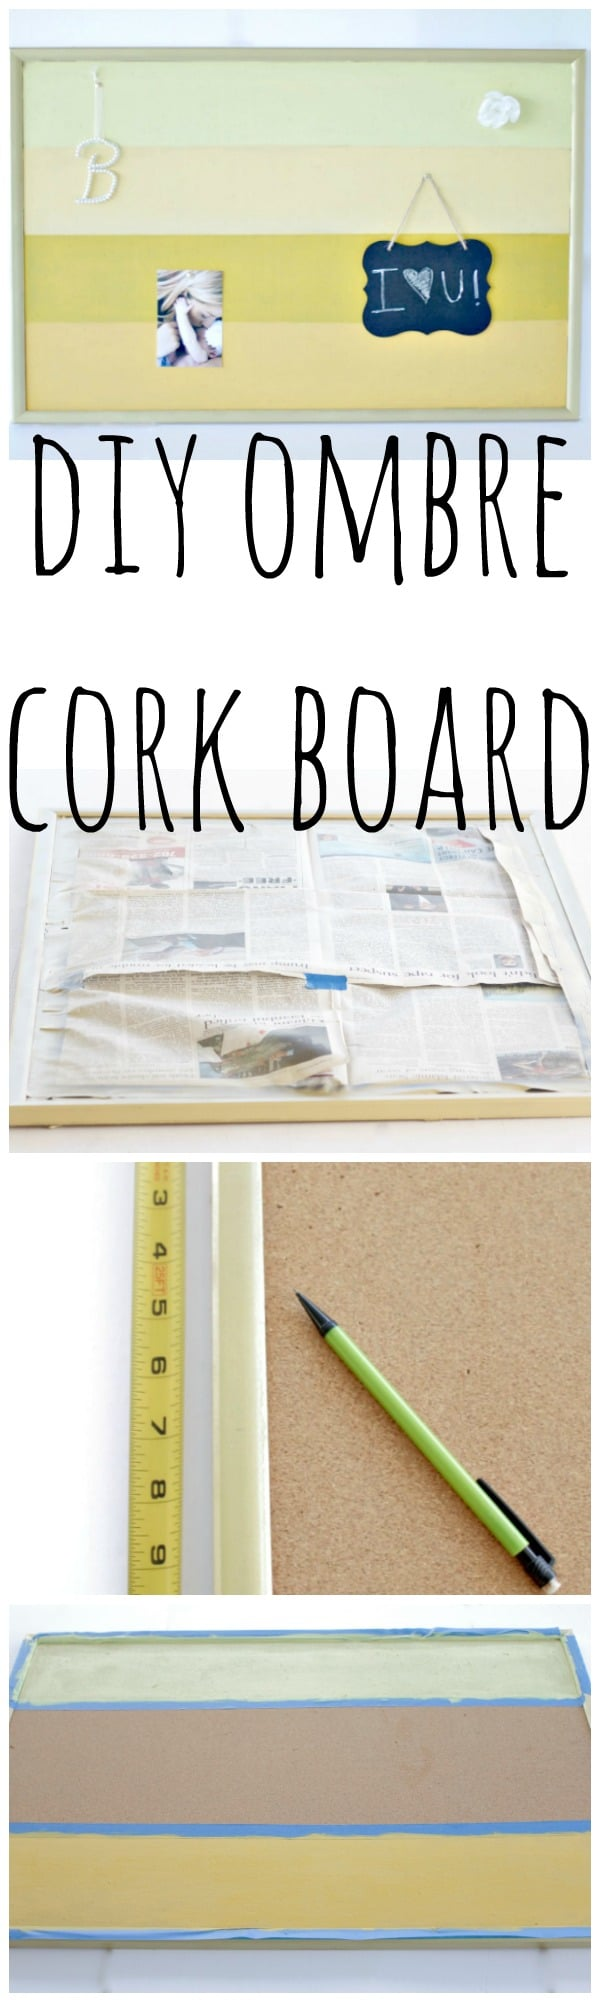 DIY Ombre Cork Board